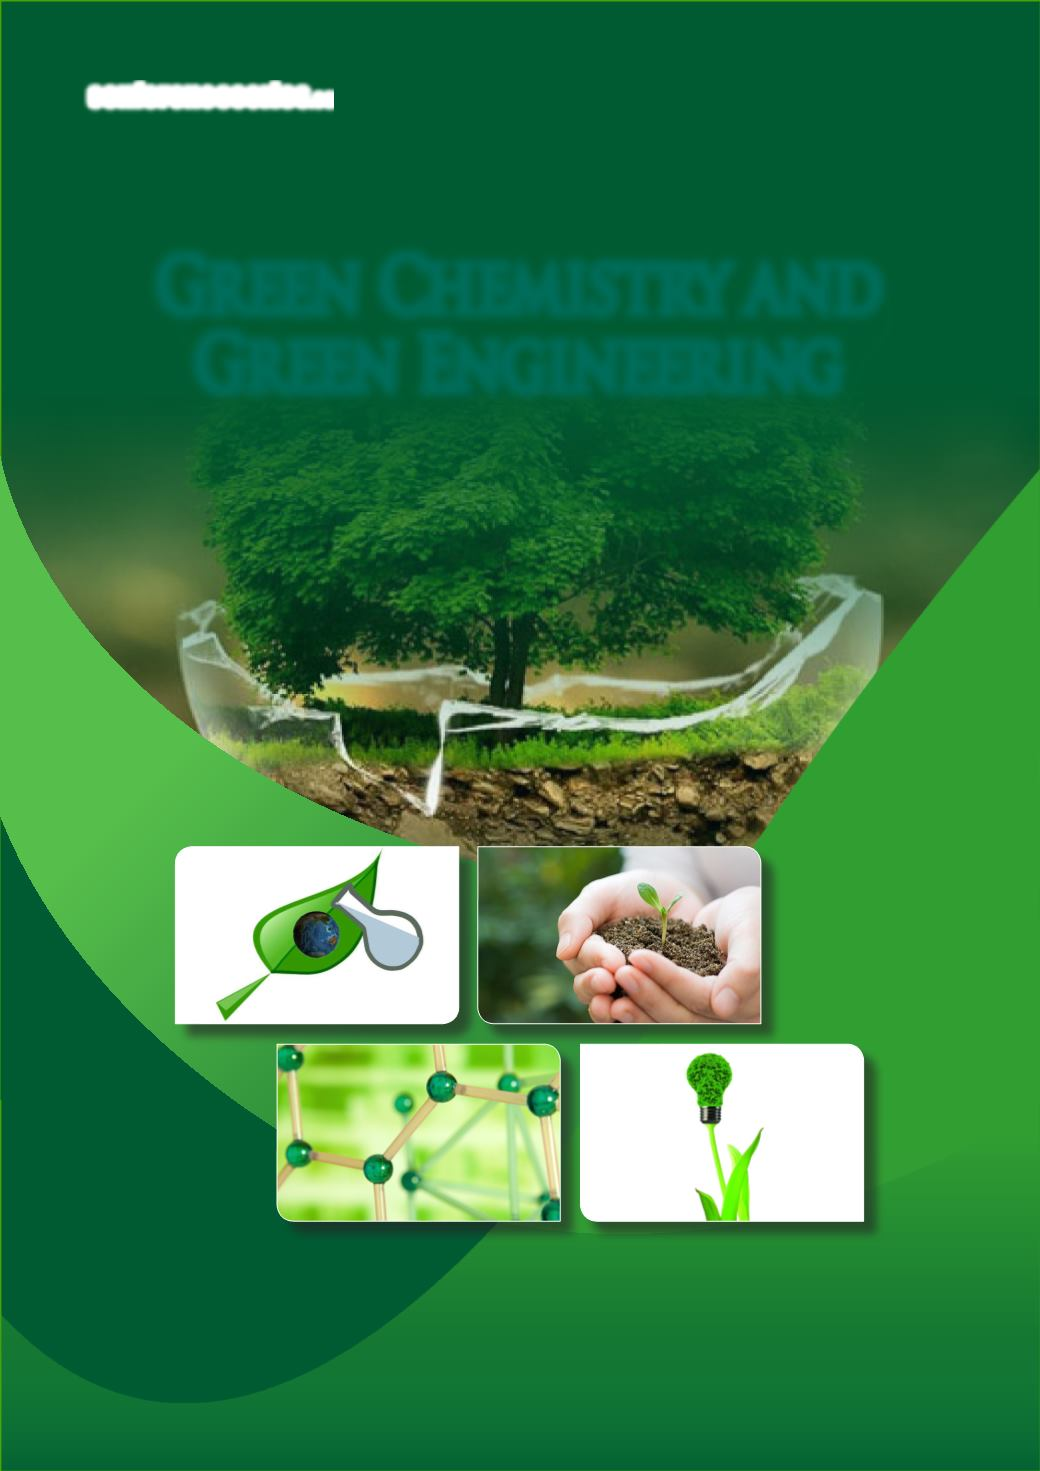 Green Chemistry Congress 2018 Proceedings